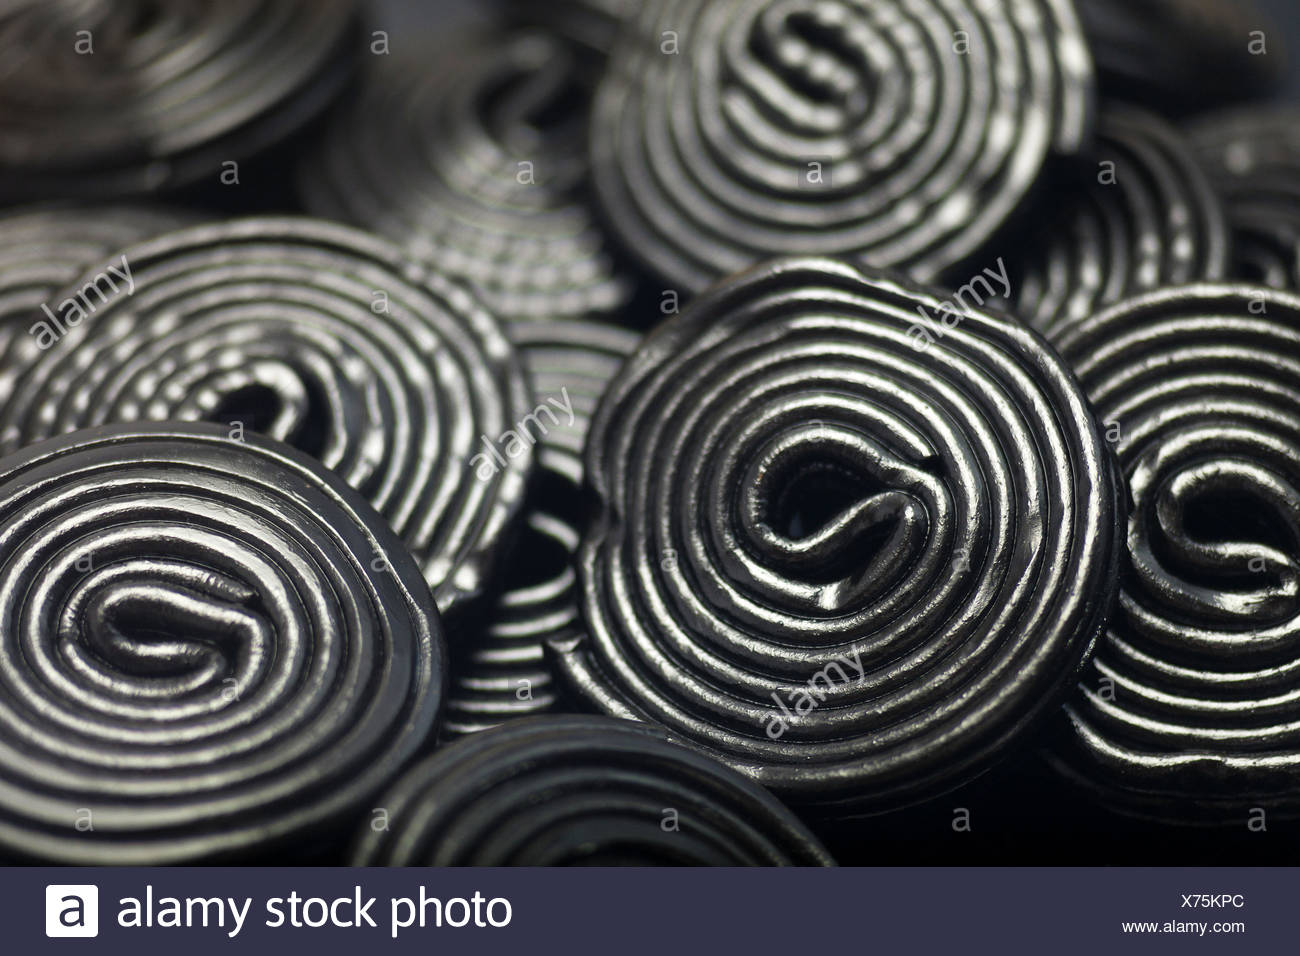 Detail of Liquorice snails. - Stock Image